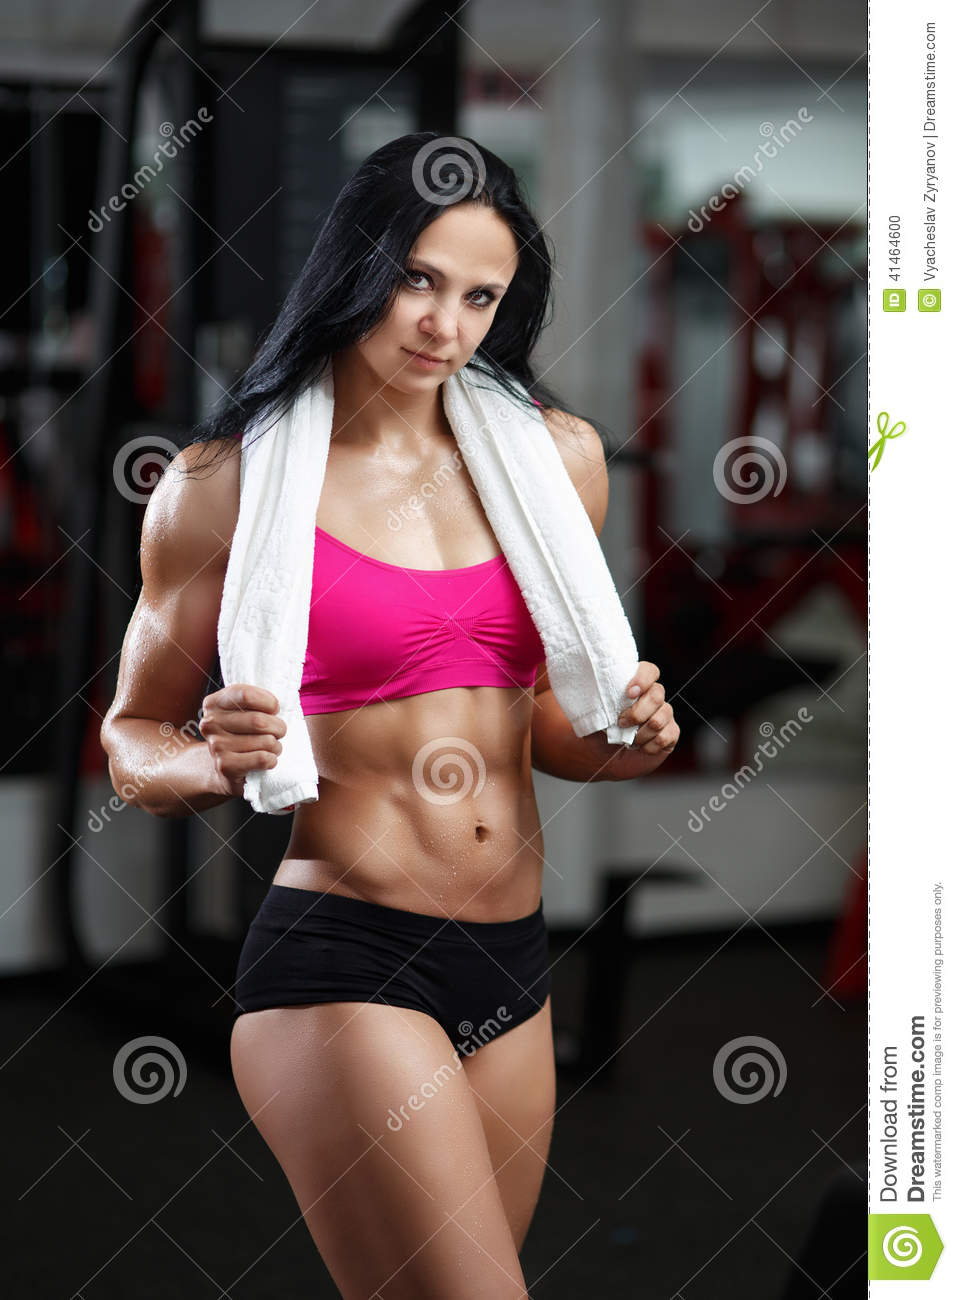 girl workout sexy Hot